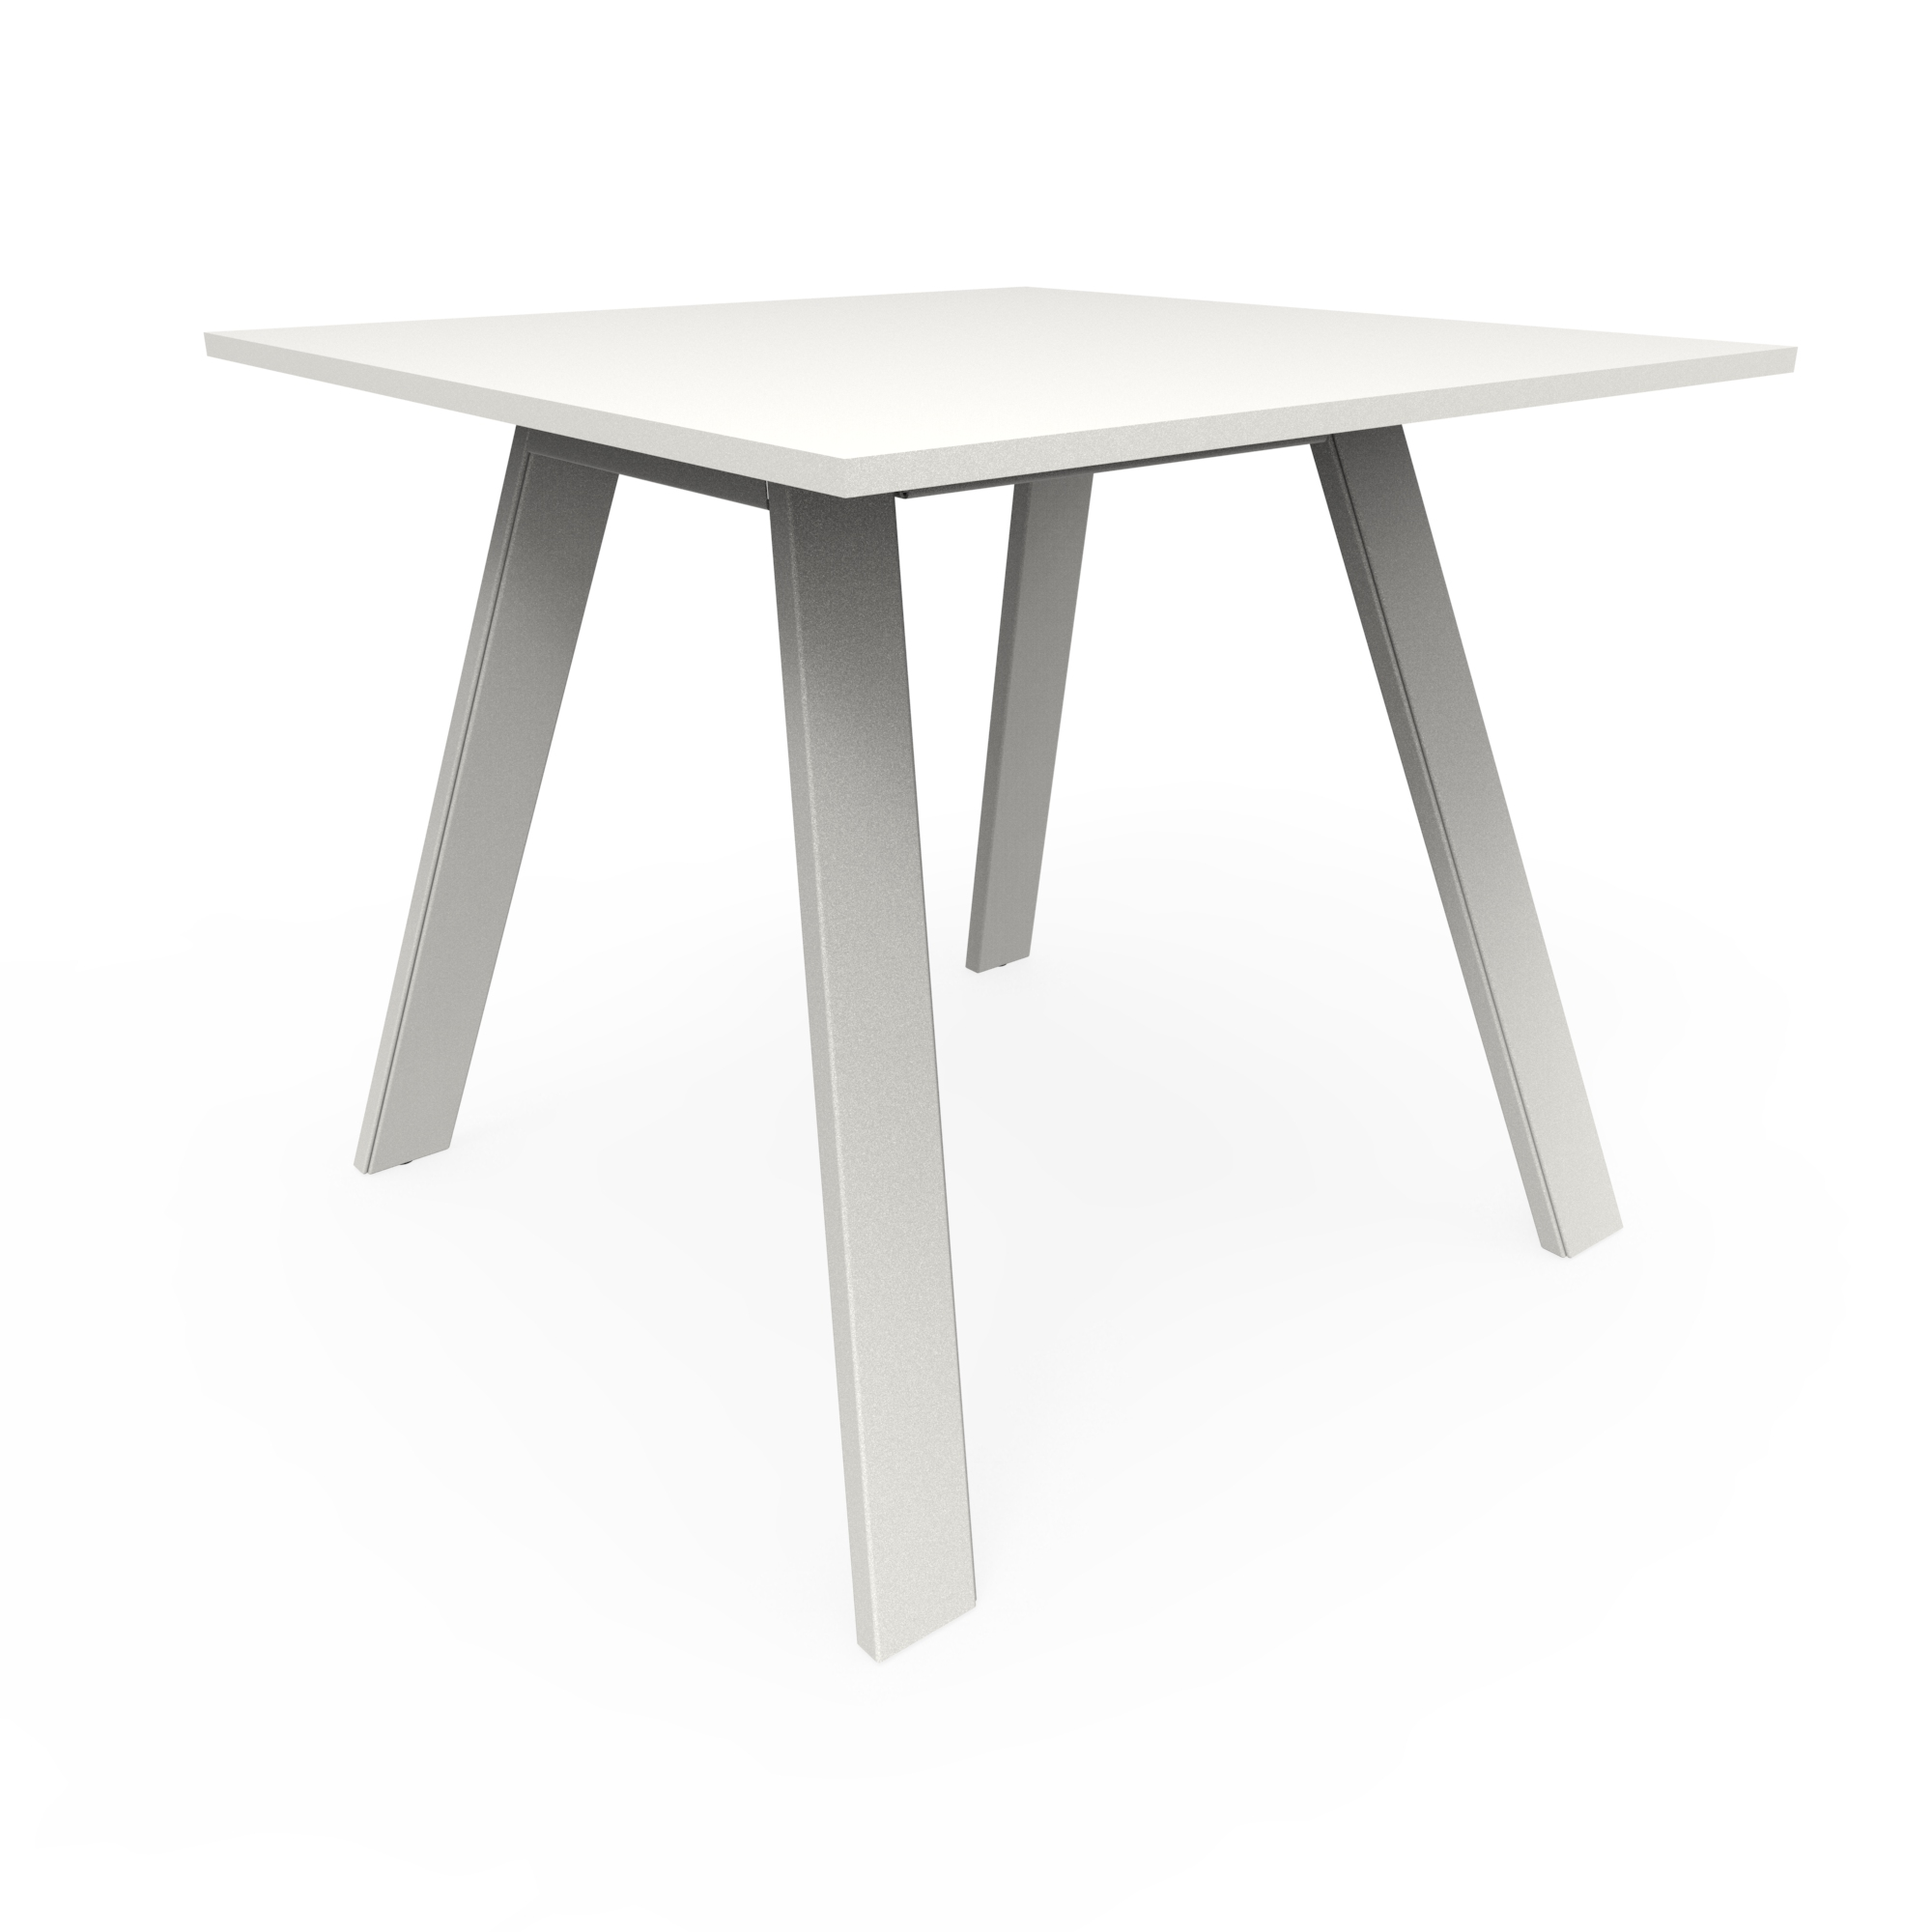 Treto high tables ZHED